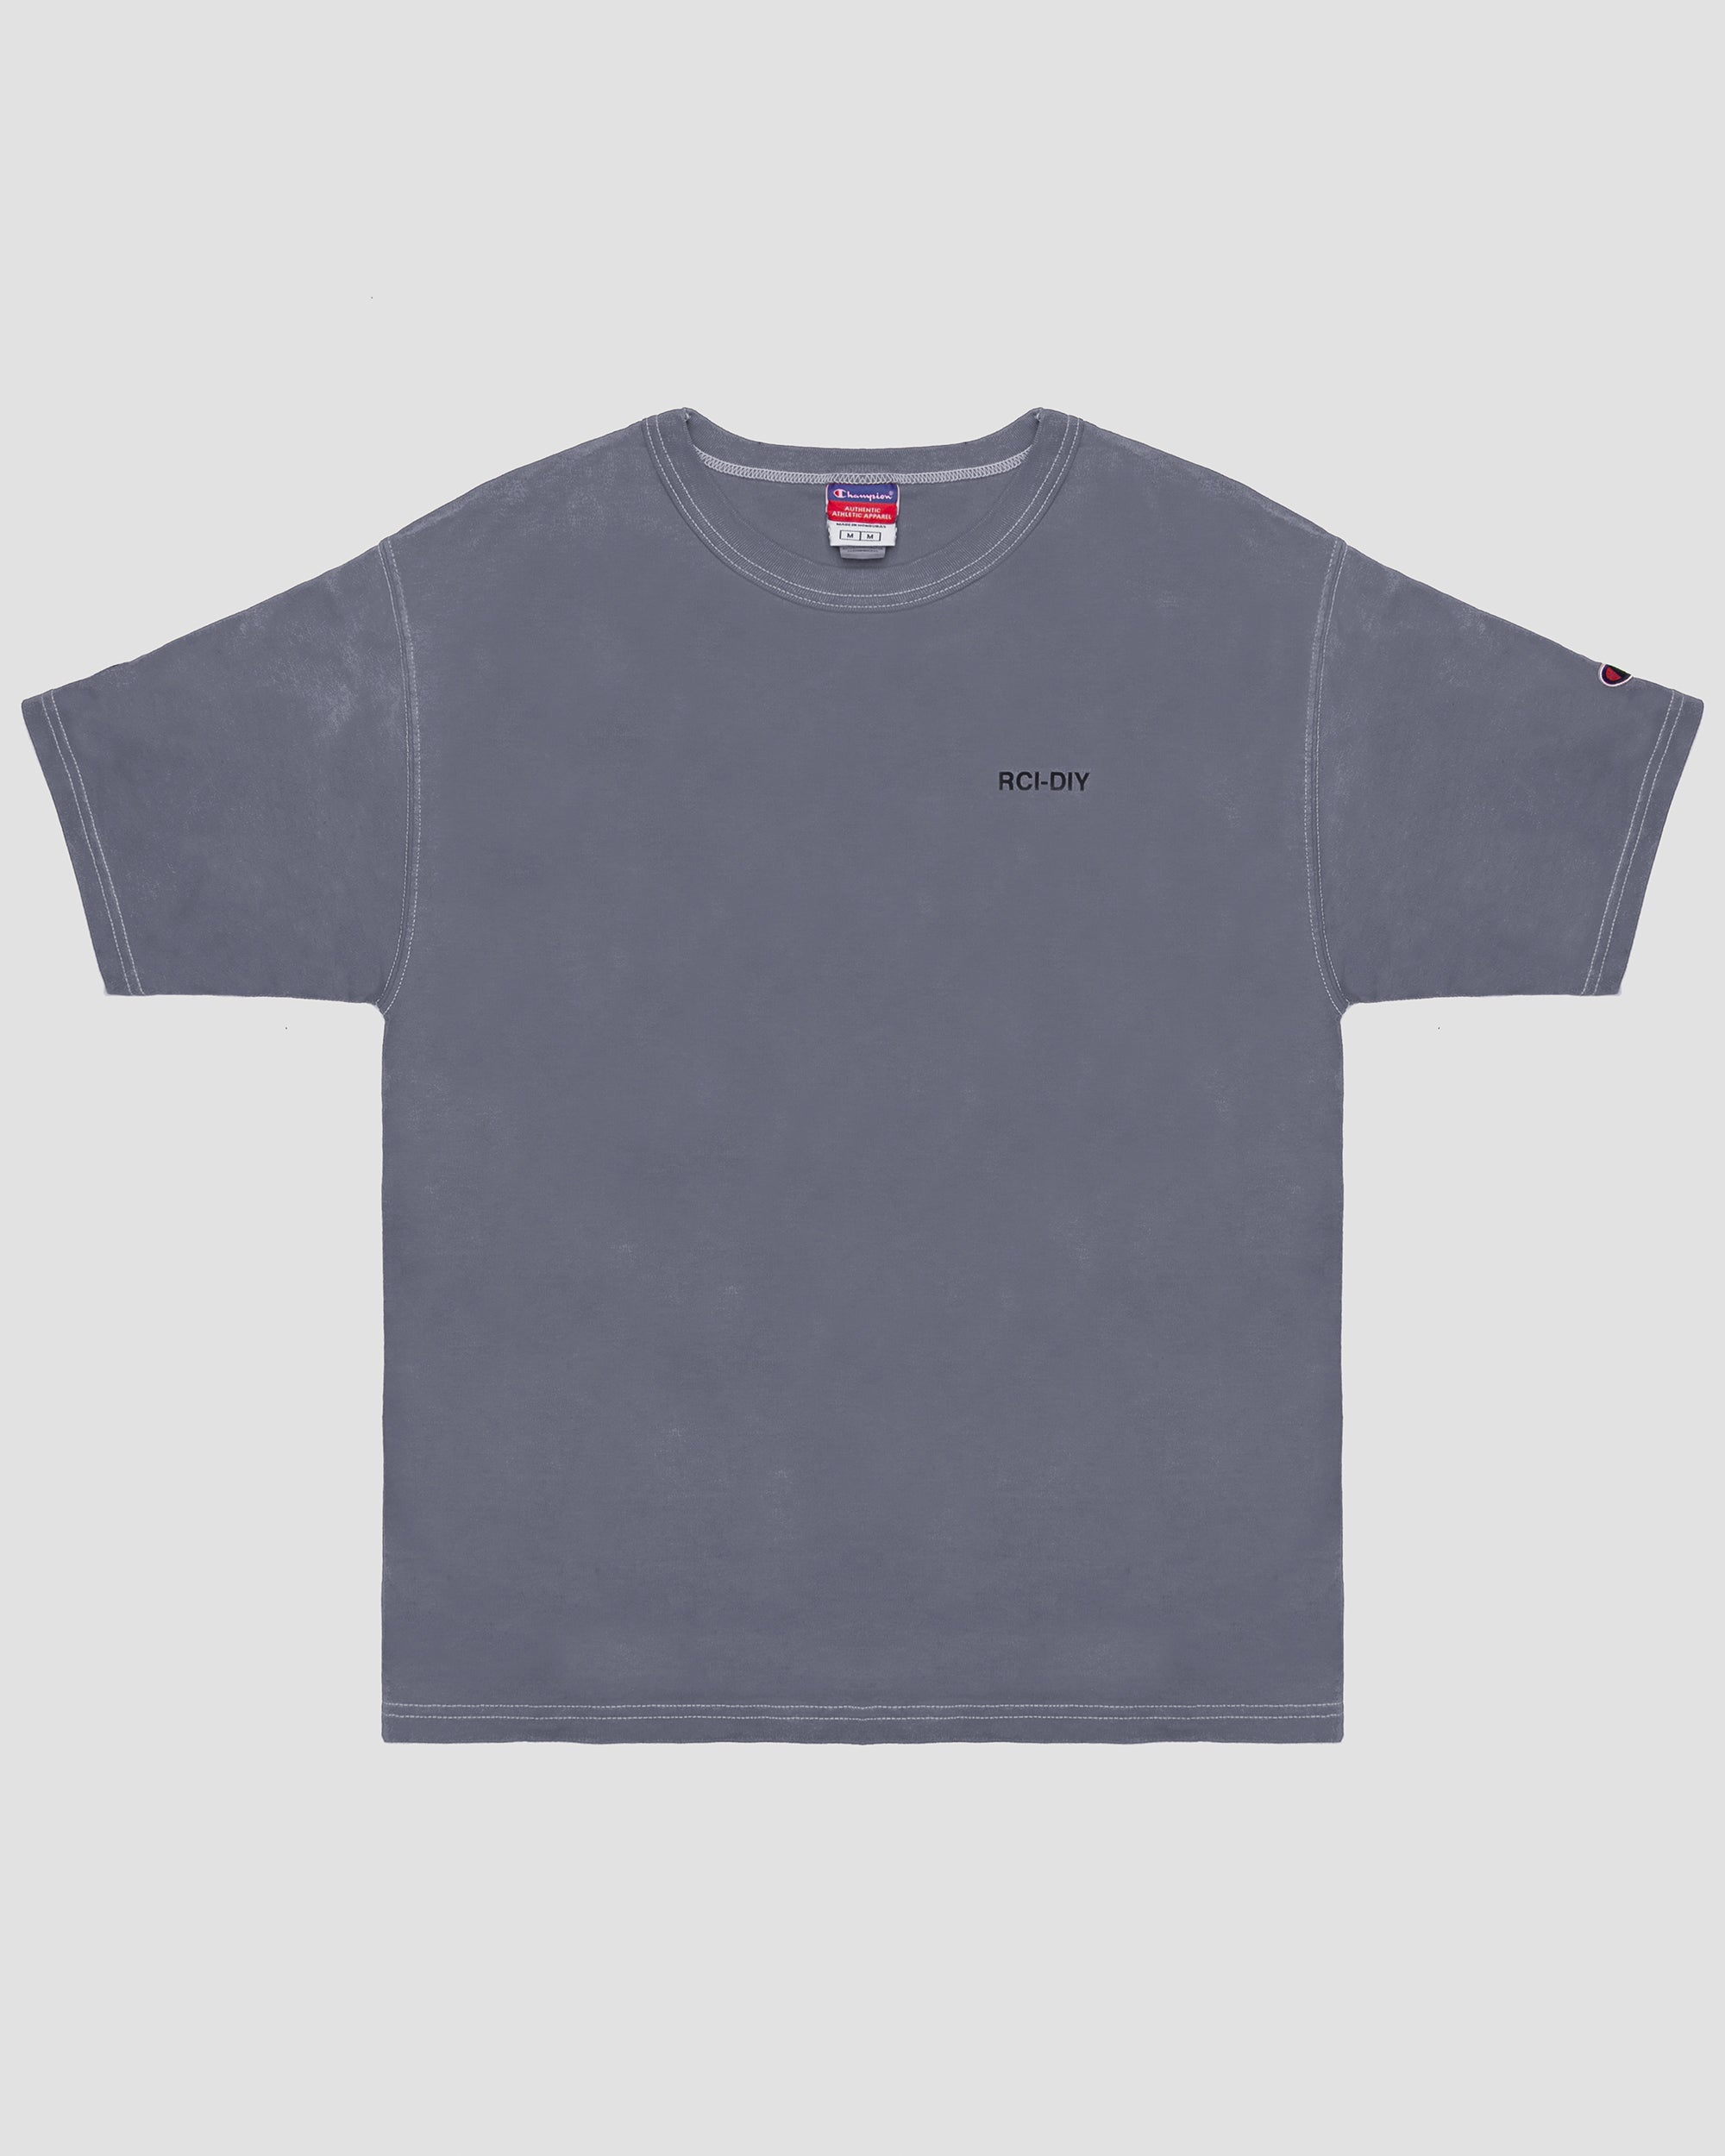 RCI - DIY Tee Shirt in Pearl Grey